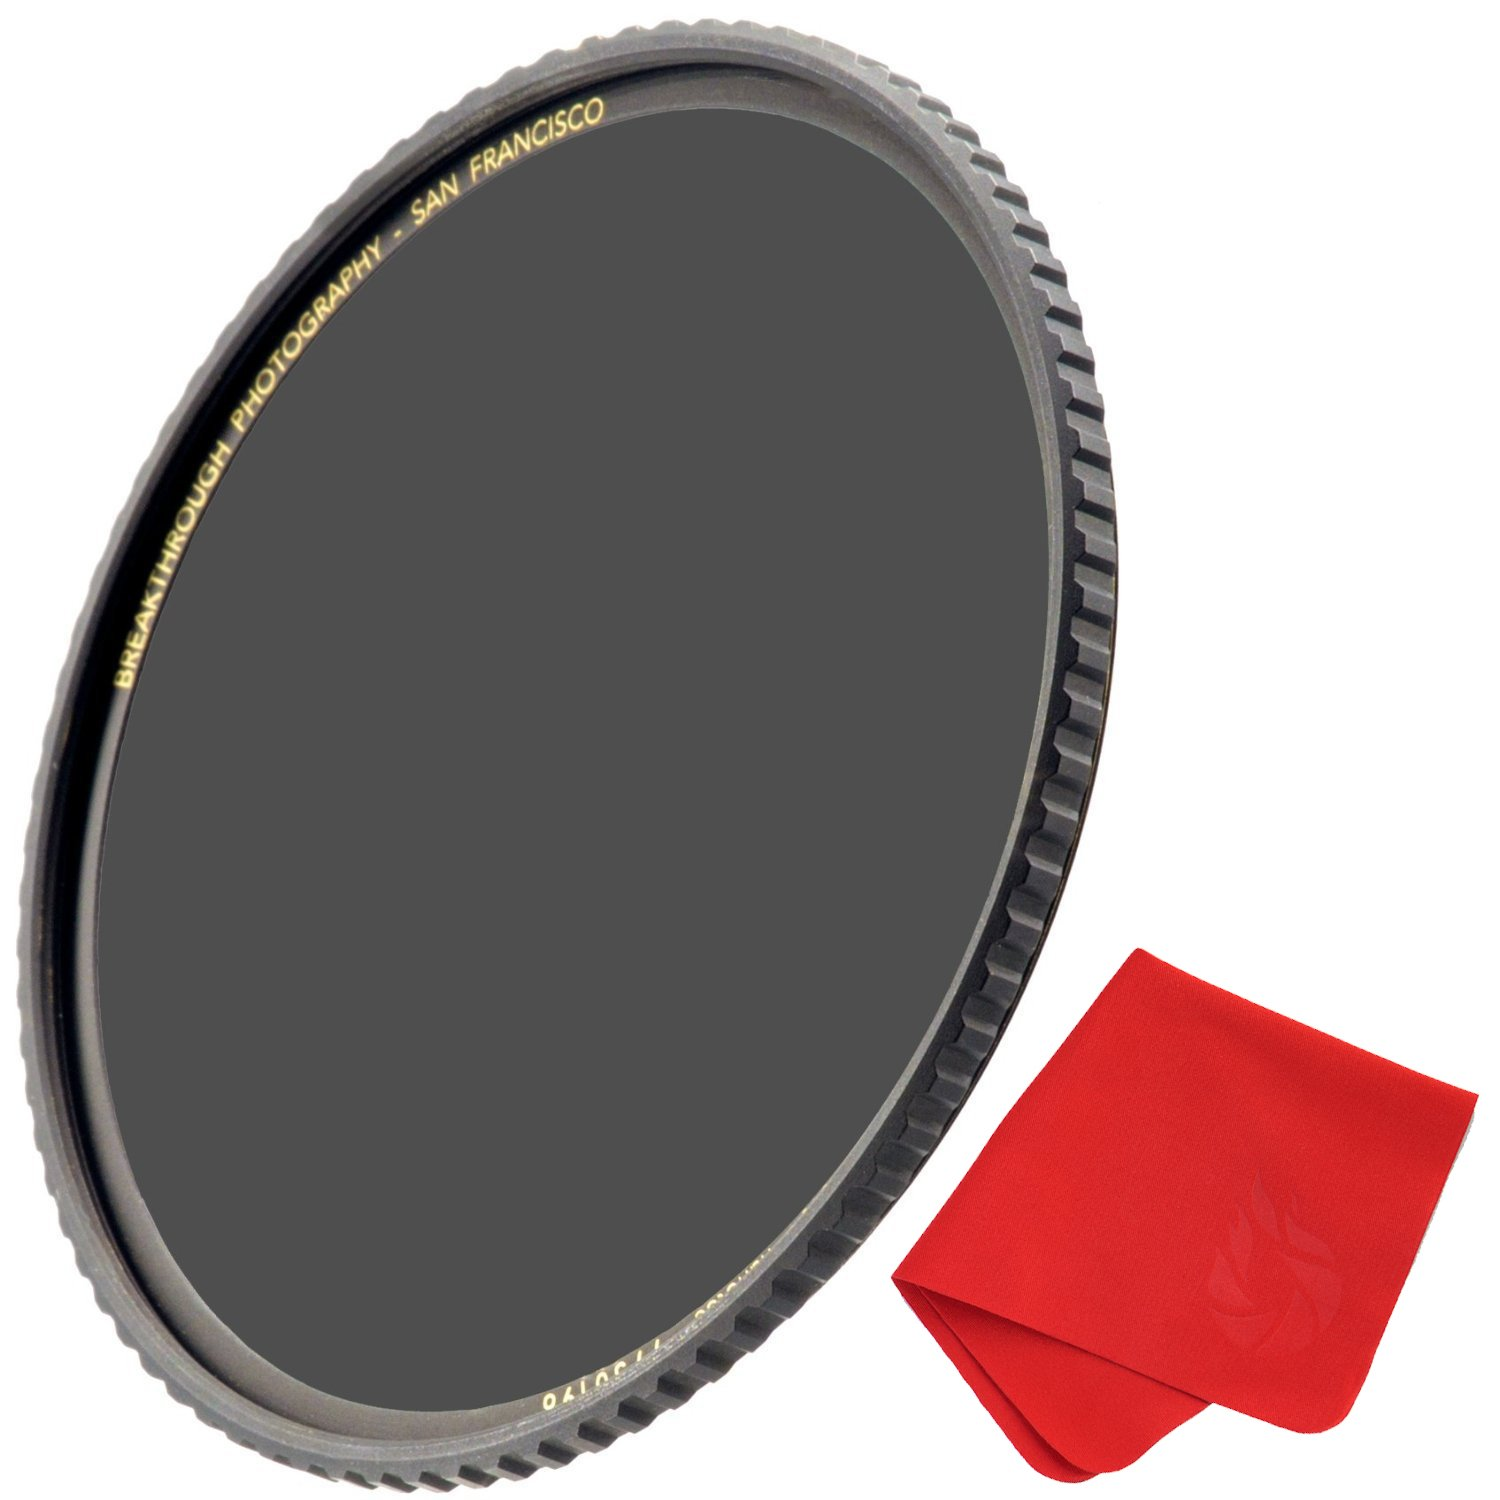 Breakthrough Photography 82mm X4 10-Stop ND Filter Camera Lenses, Neutral Density Professional Photography Filter Lens Cloth, MRC16, Schott B270 Glass, Nanotec, Ultra-Slim, Weather-Sealed by Breakthrough Photography (Image #1)